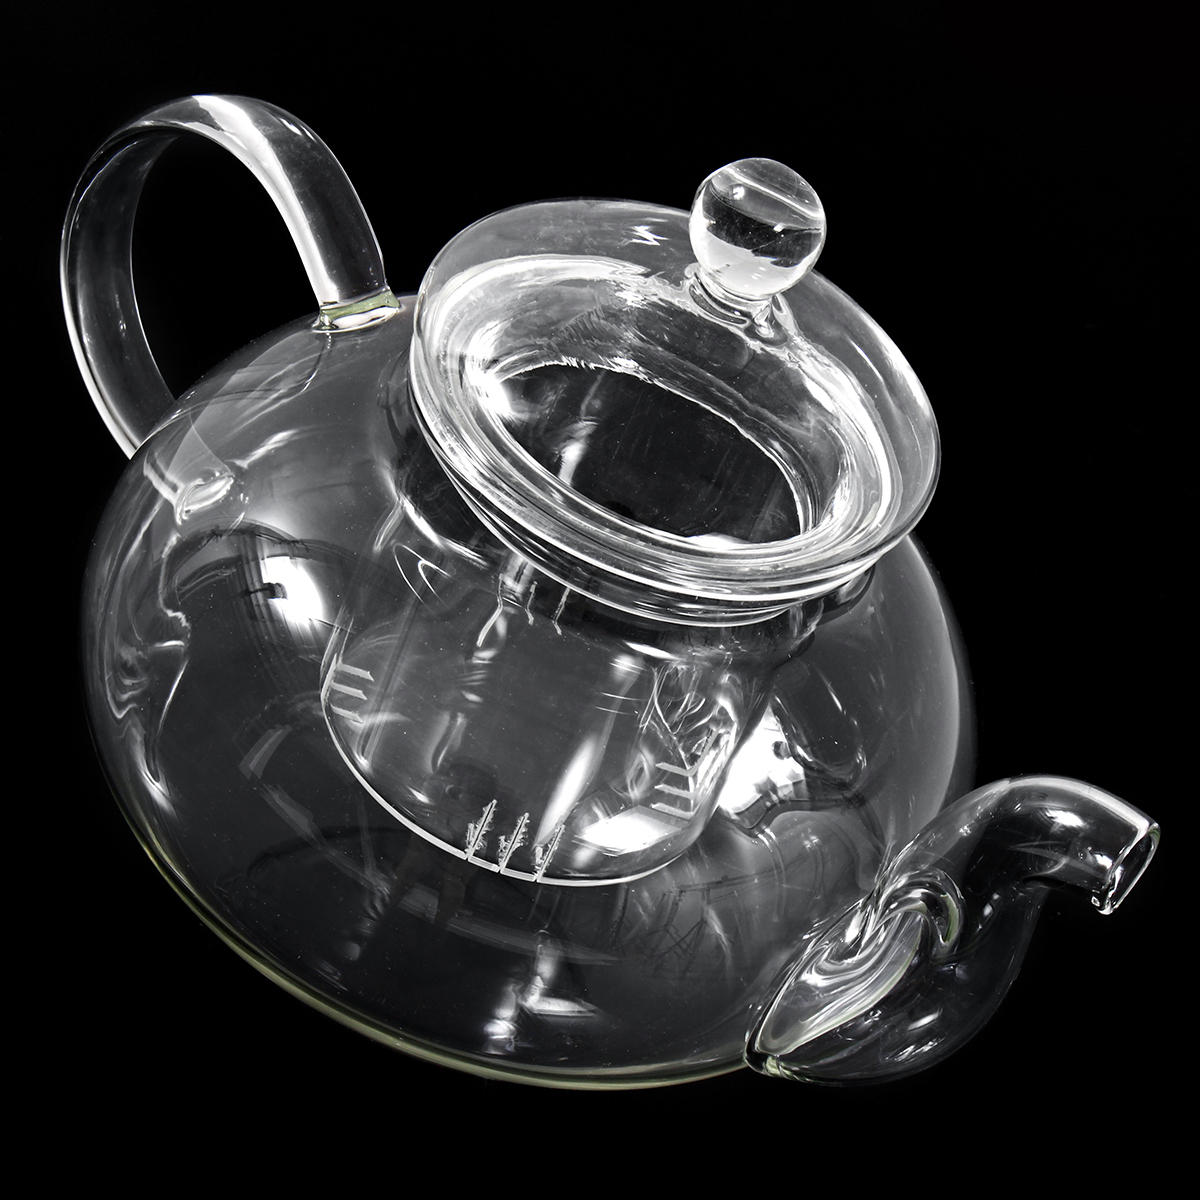 8 Pcs/Set Clear Glass Tea Double Wall Teapot & Cup Filtering Drink Home Decor - 7